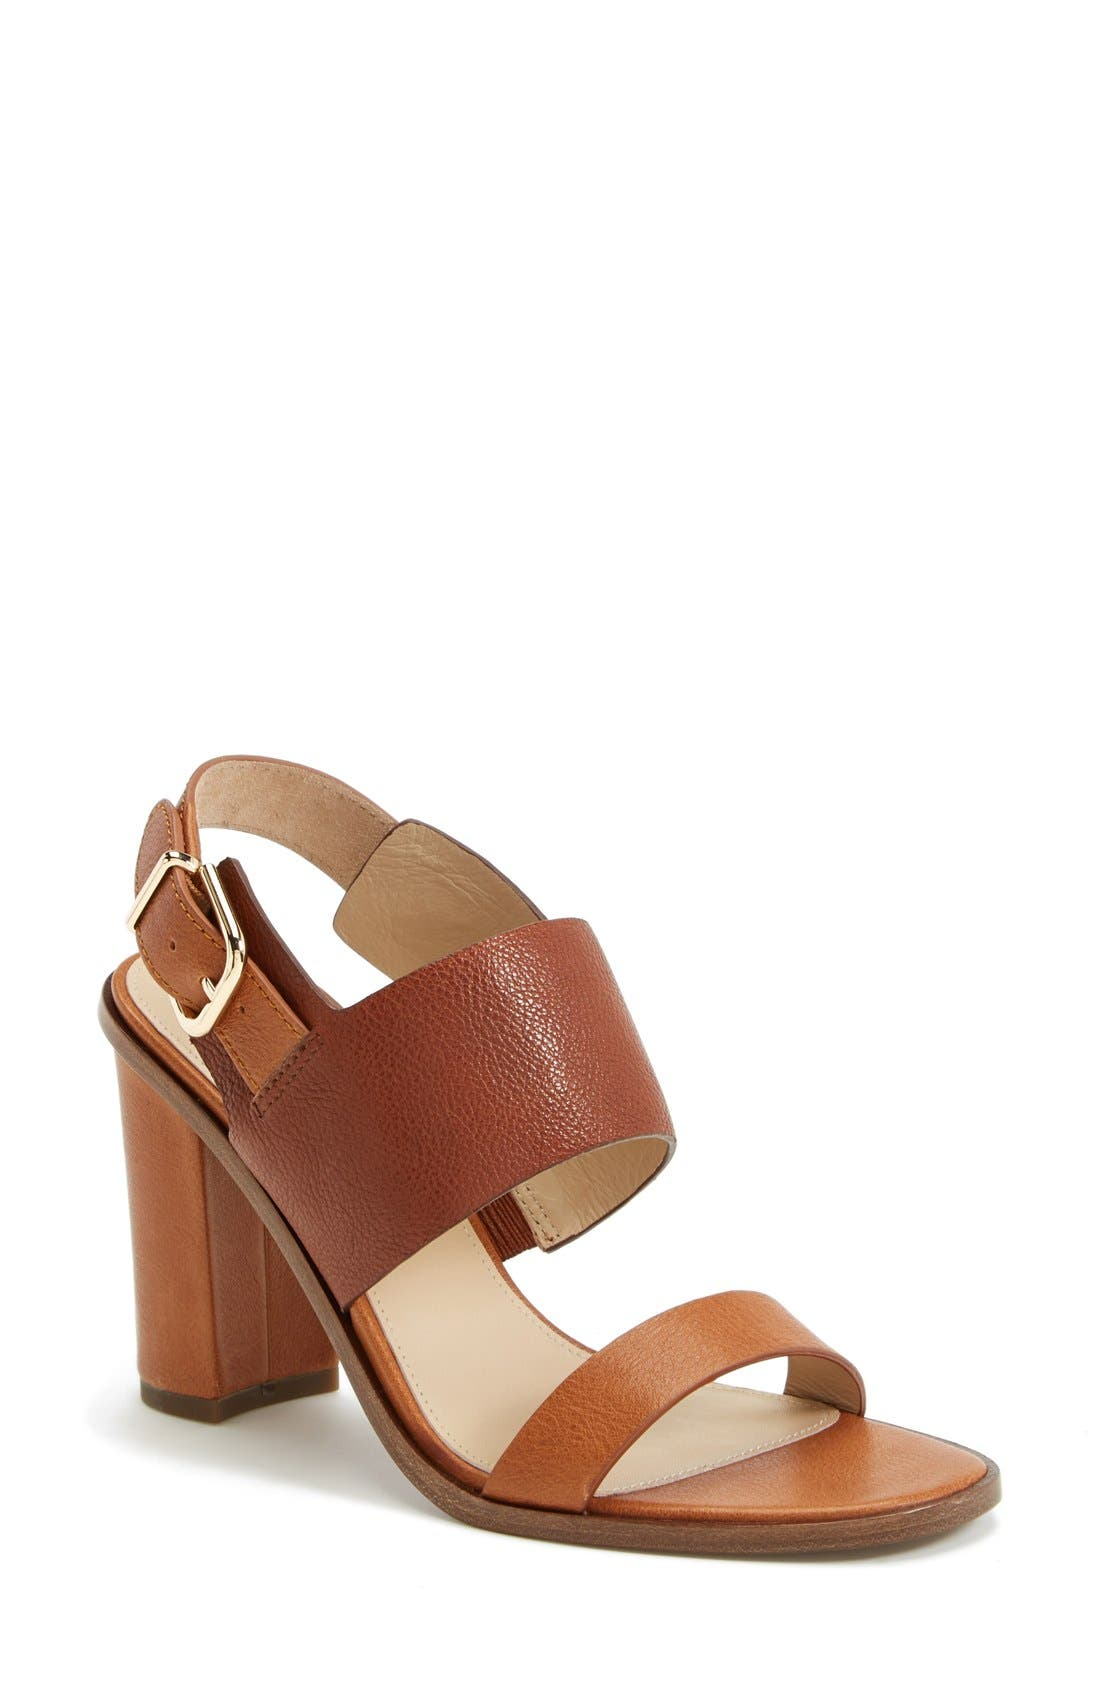 Alternate Image 1 Selected - Via Spiga 'Baris' Leather Slingback Sandal (Women) (Nordstrom Exclusive)